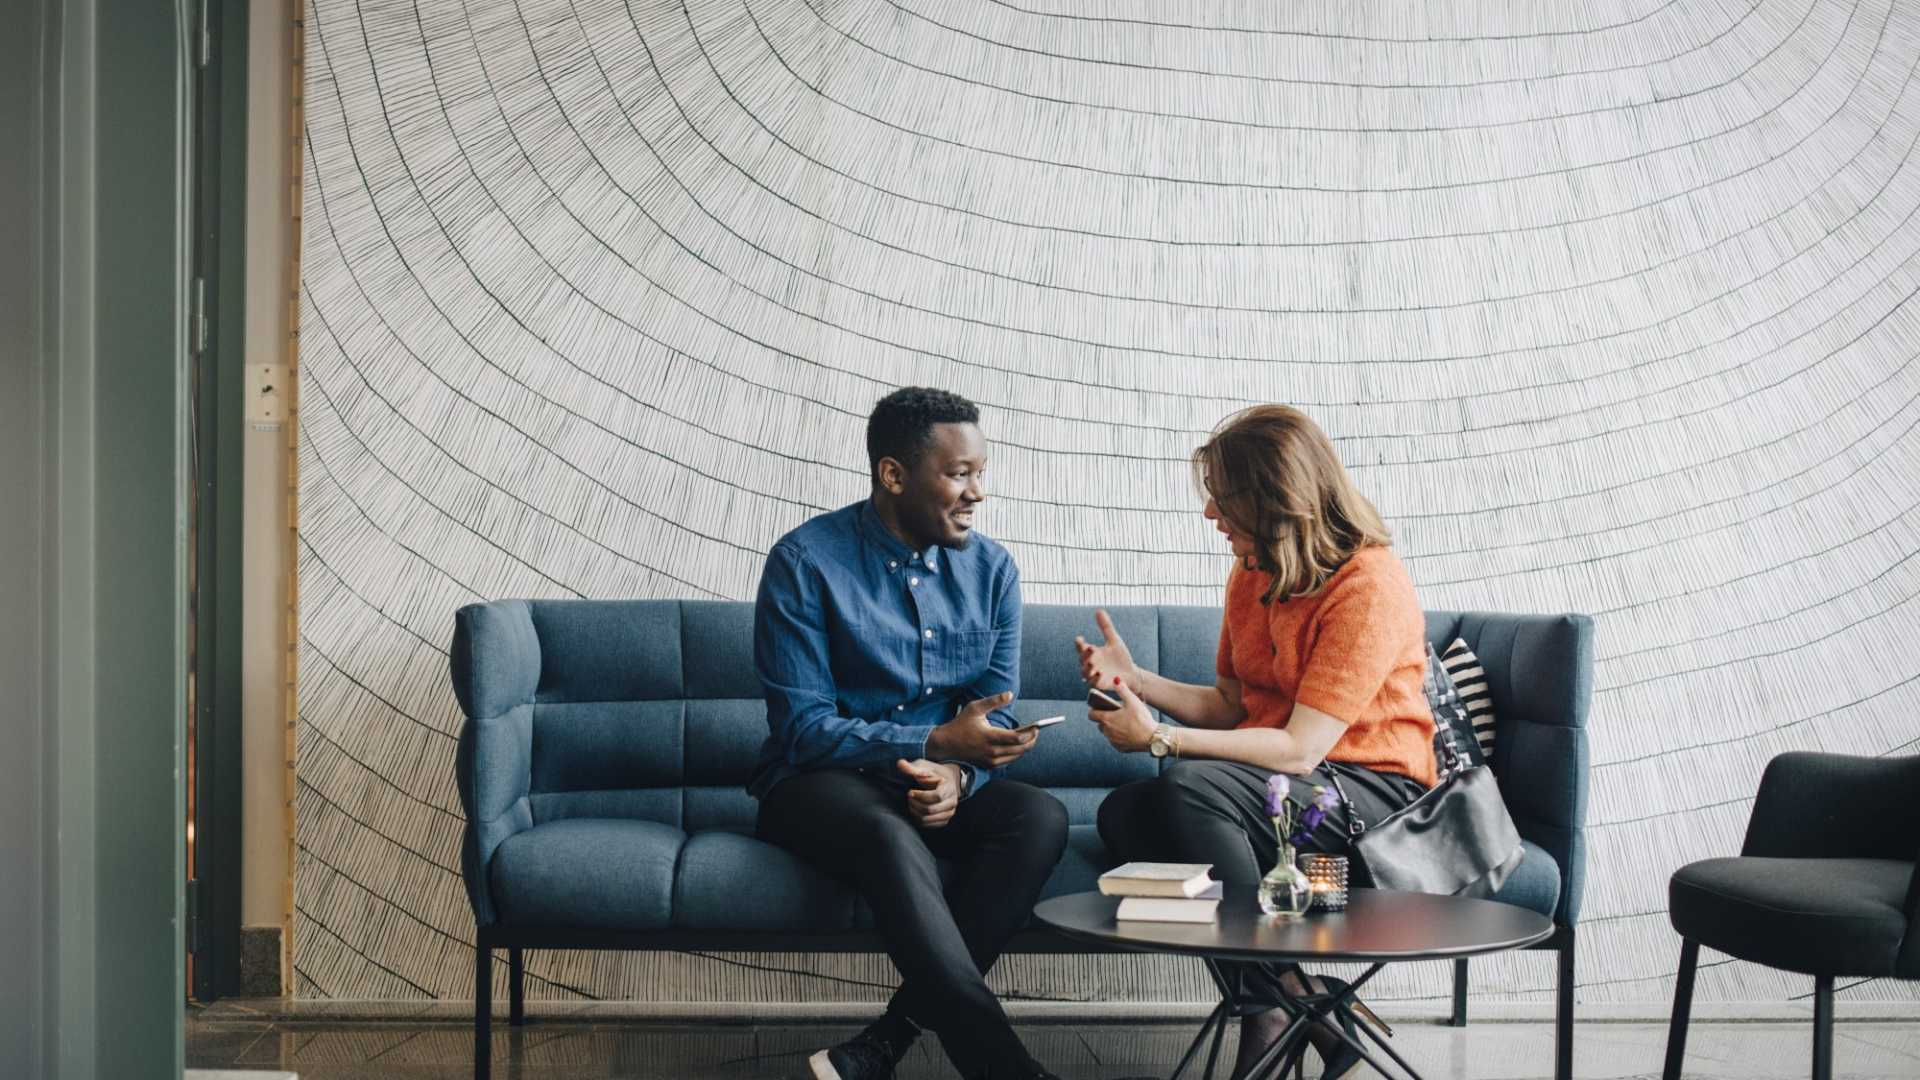 Master the Art of Small Talk in 7 Steps